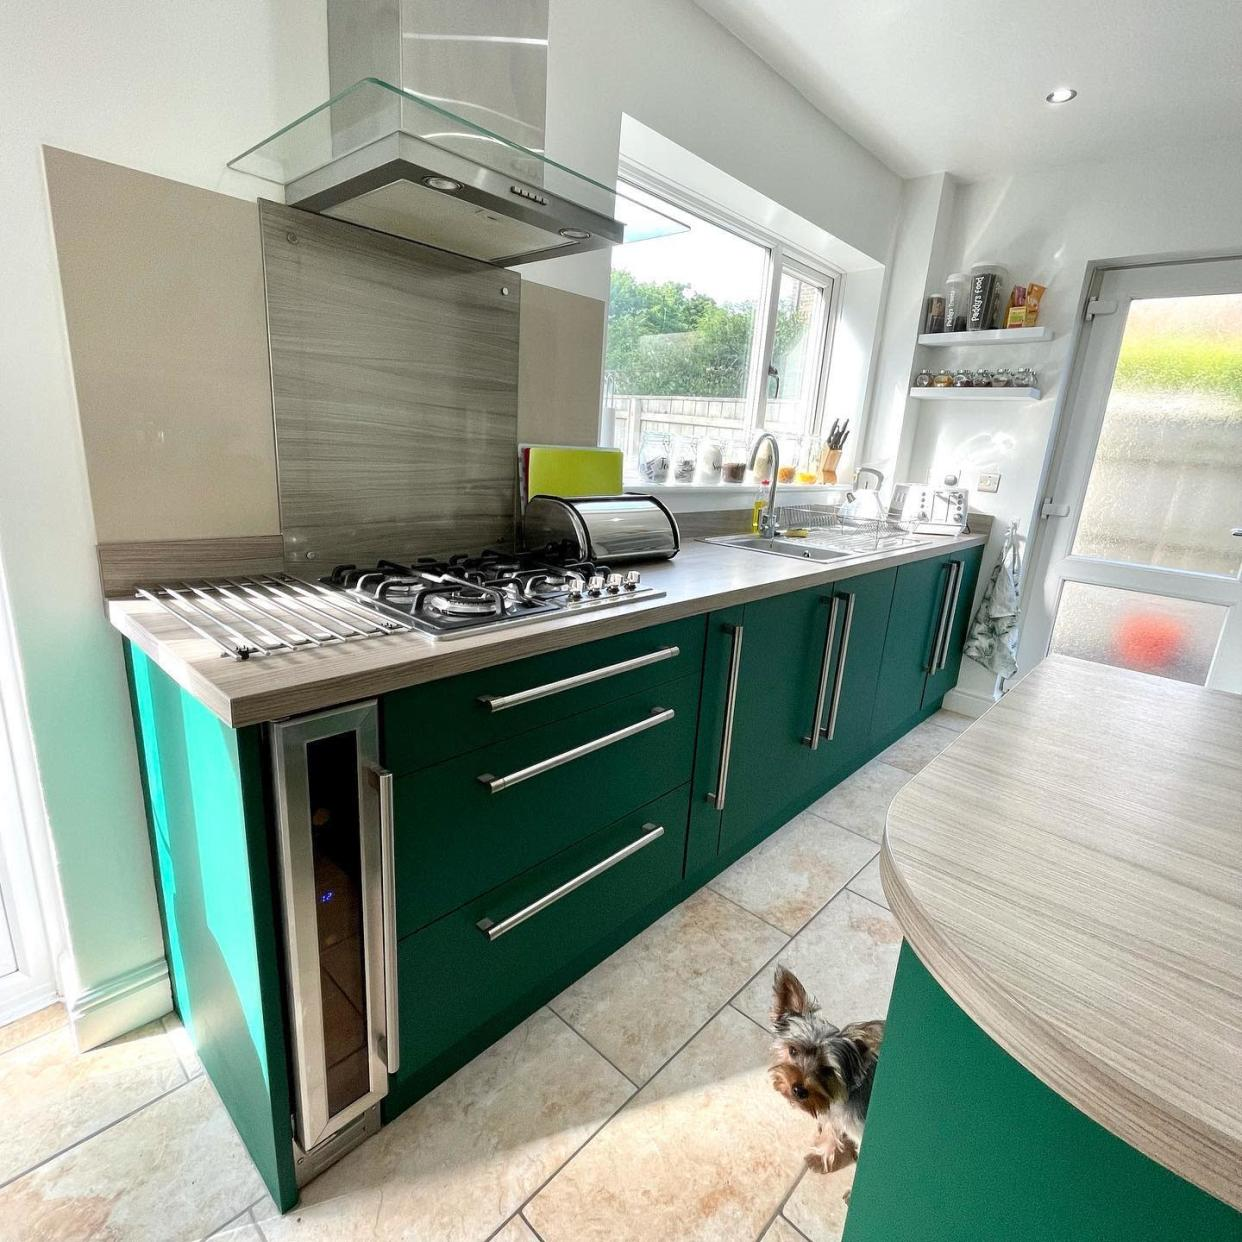 The kitchen was given a fresh new look. (Latestdeals.co.uk)